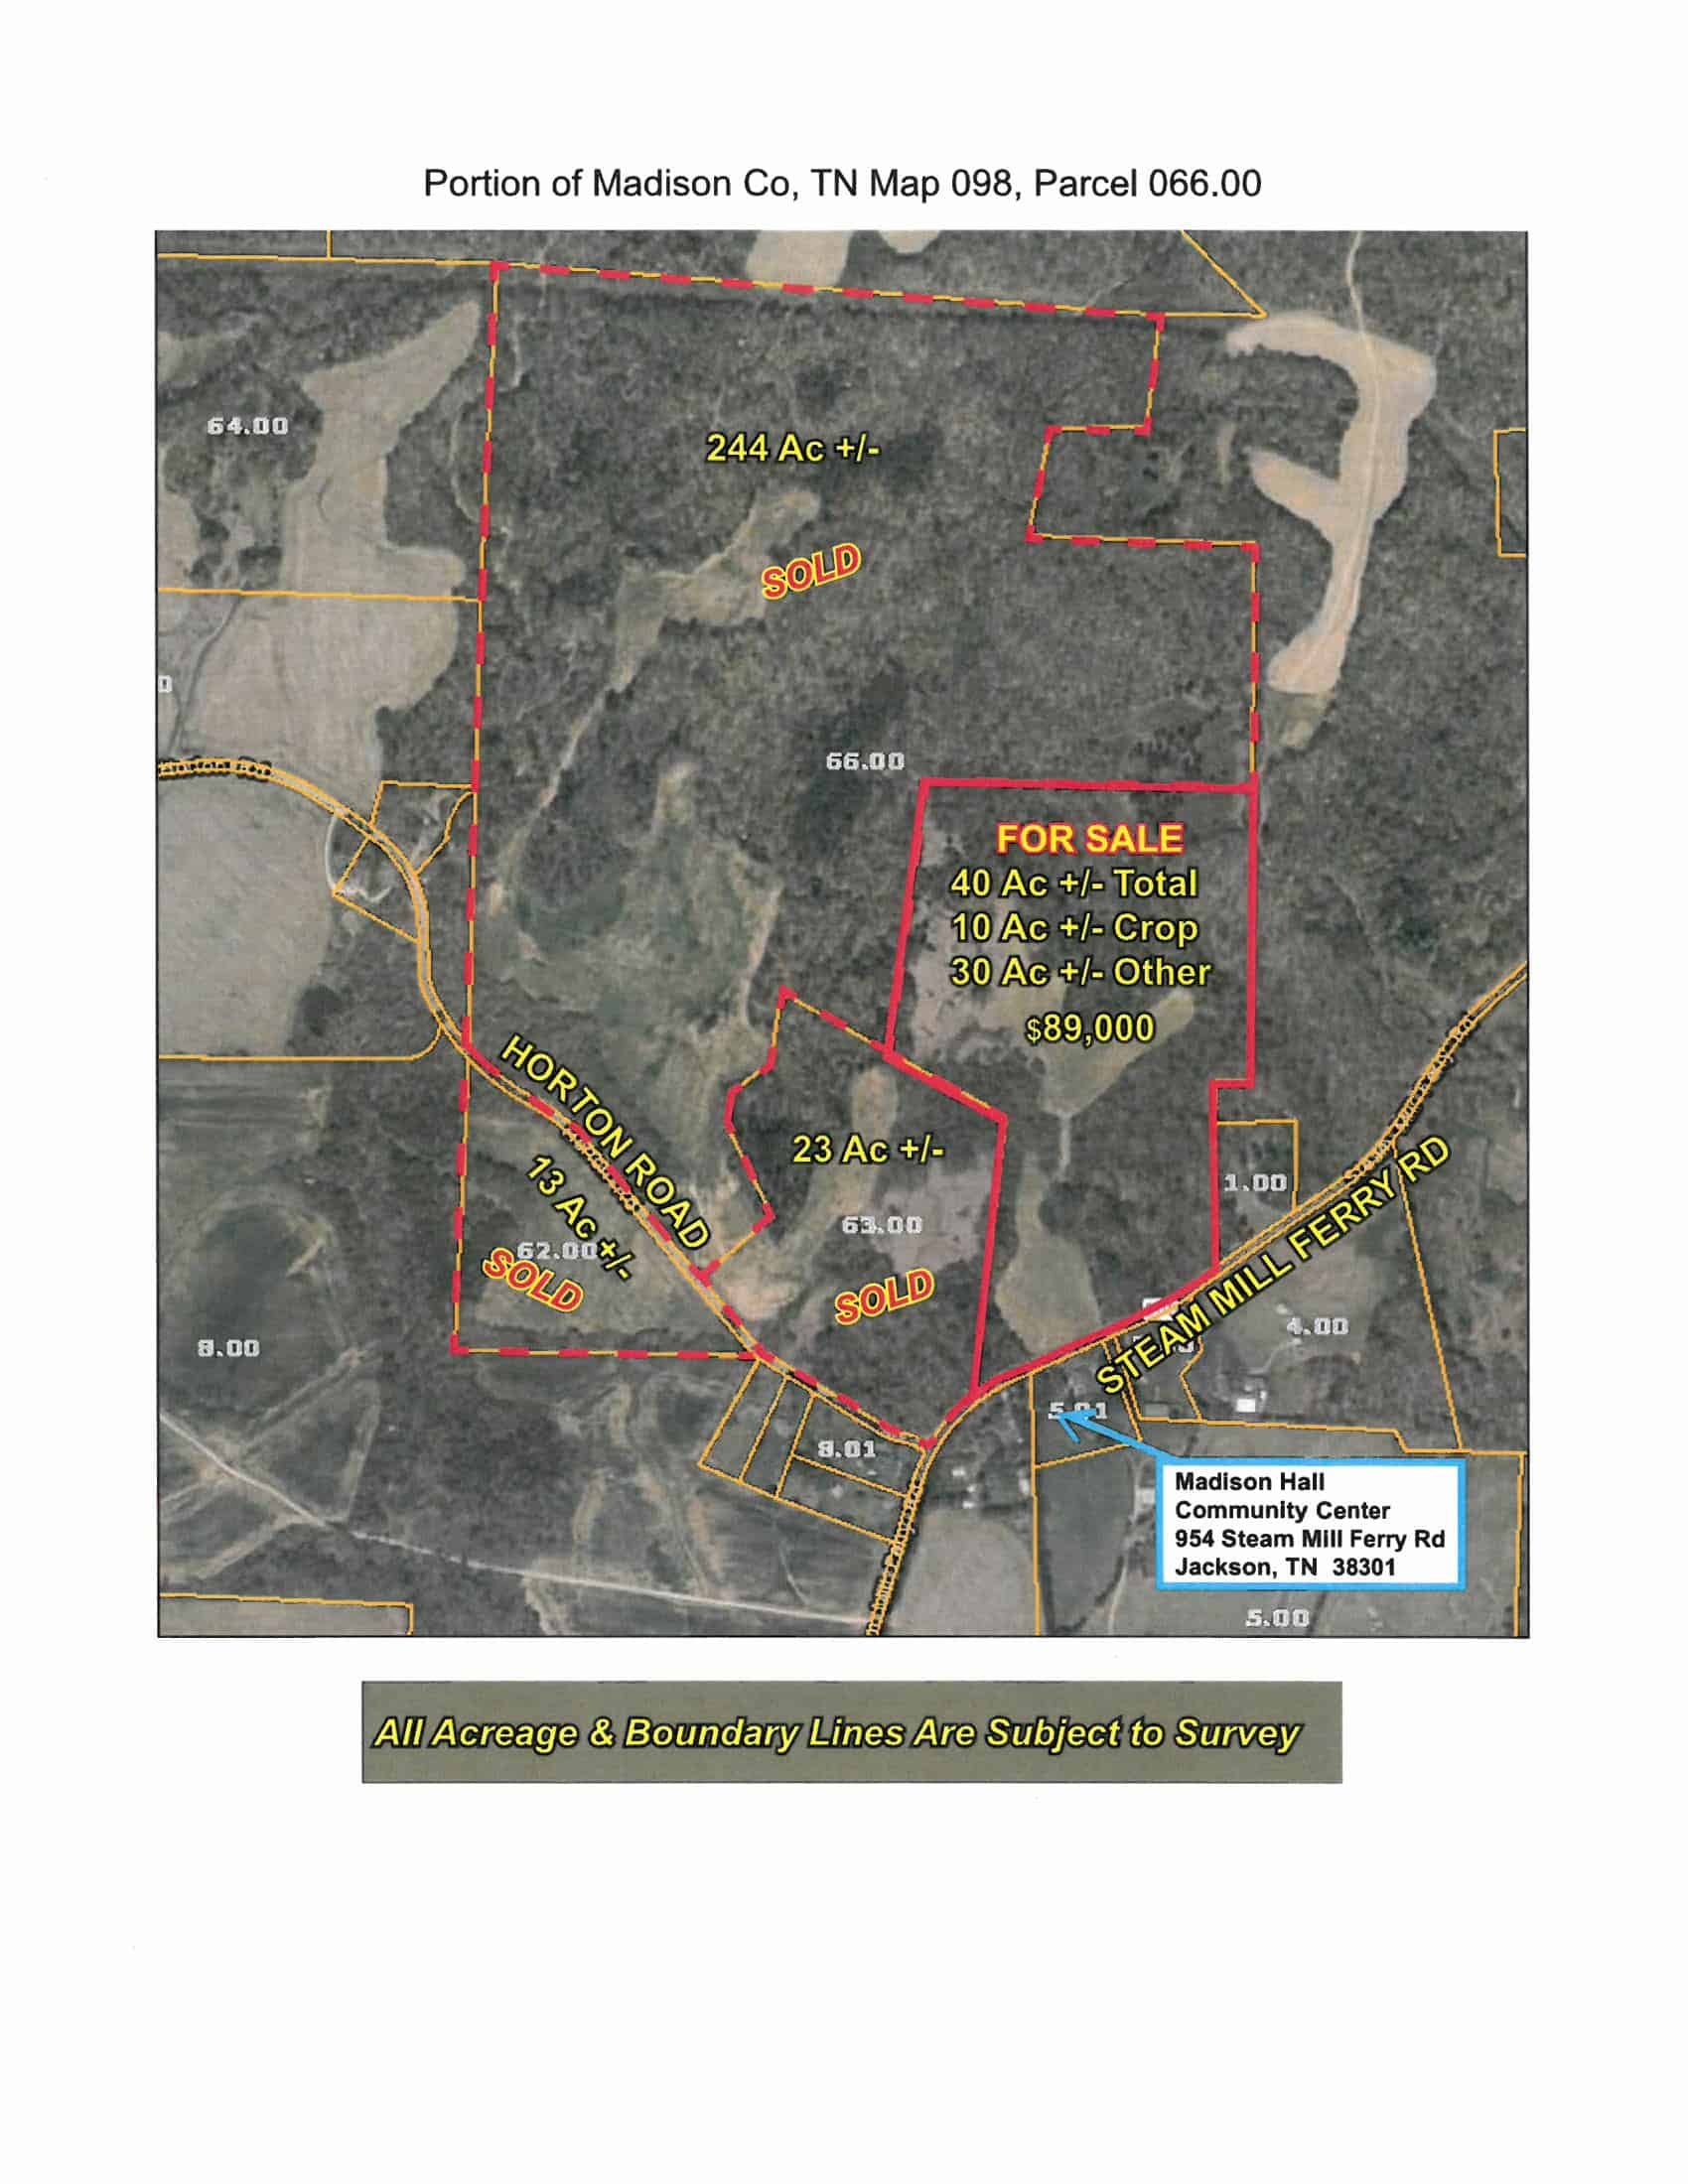 Steam Mill Ferry Road – 31.78 Acres